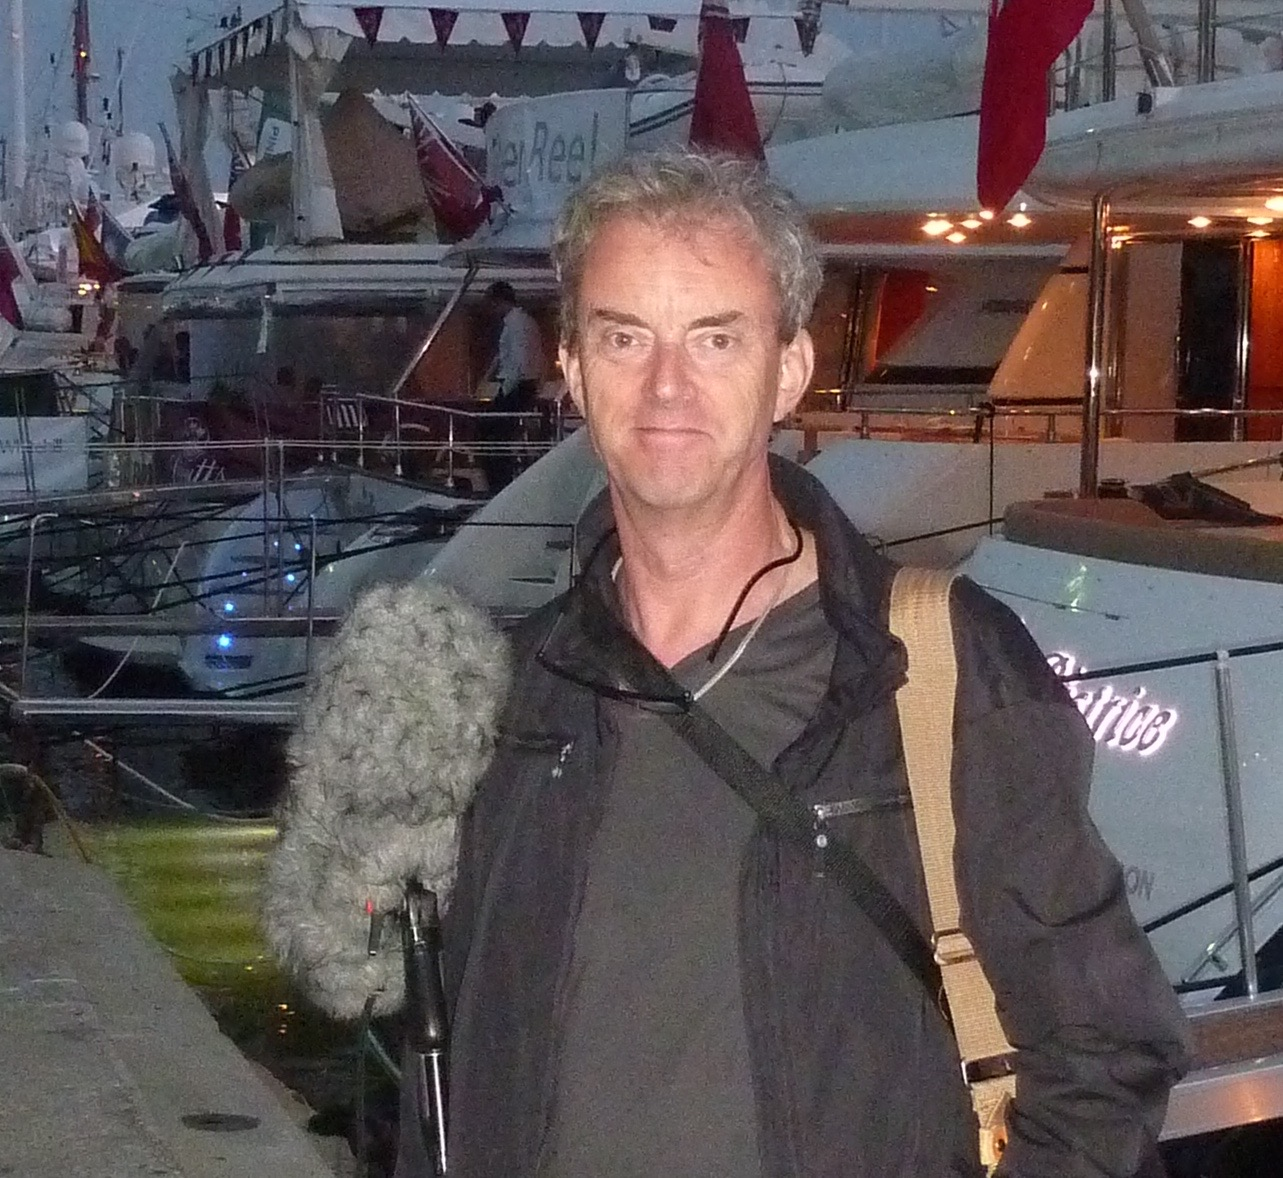 Chris Wherry on location in Cannes